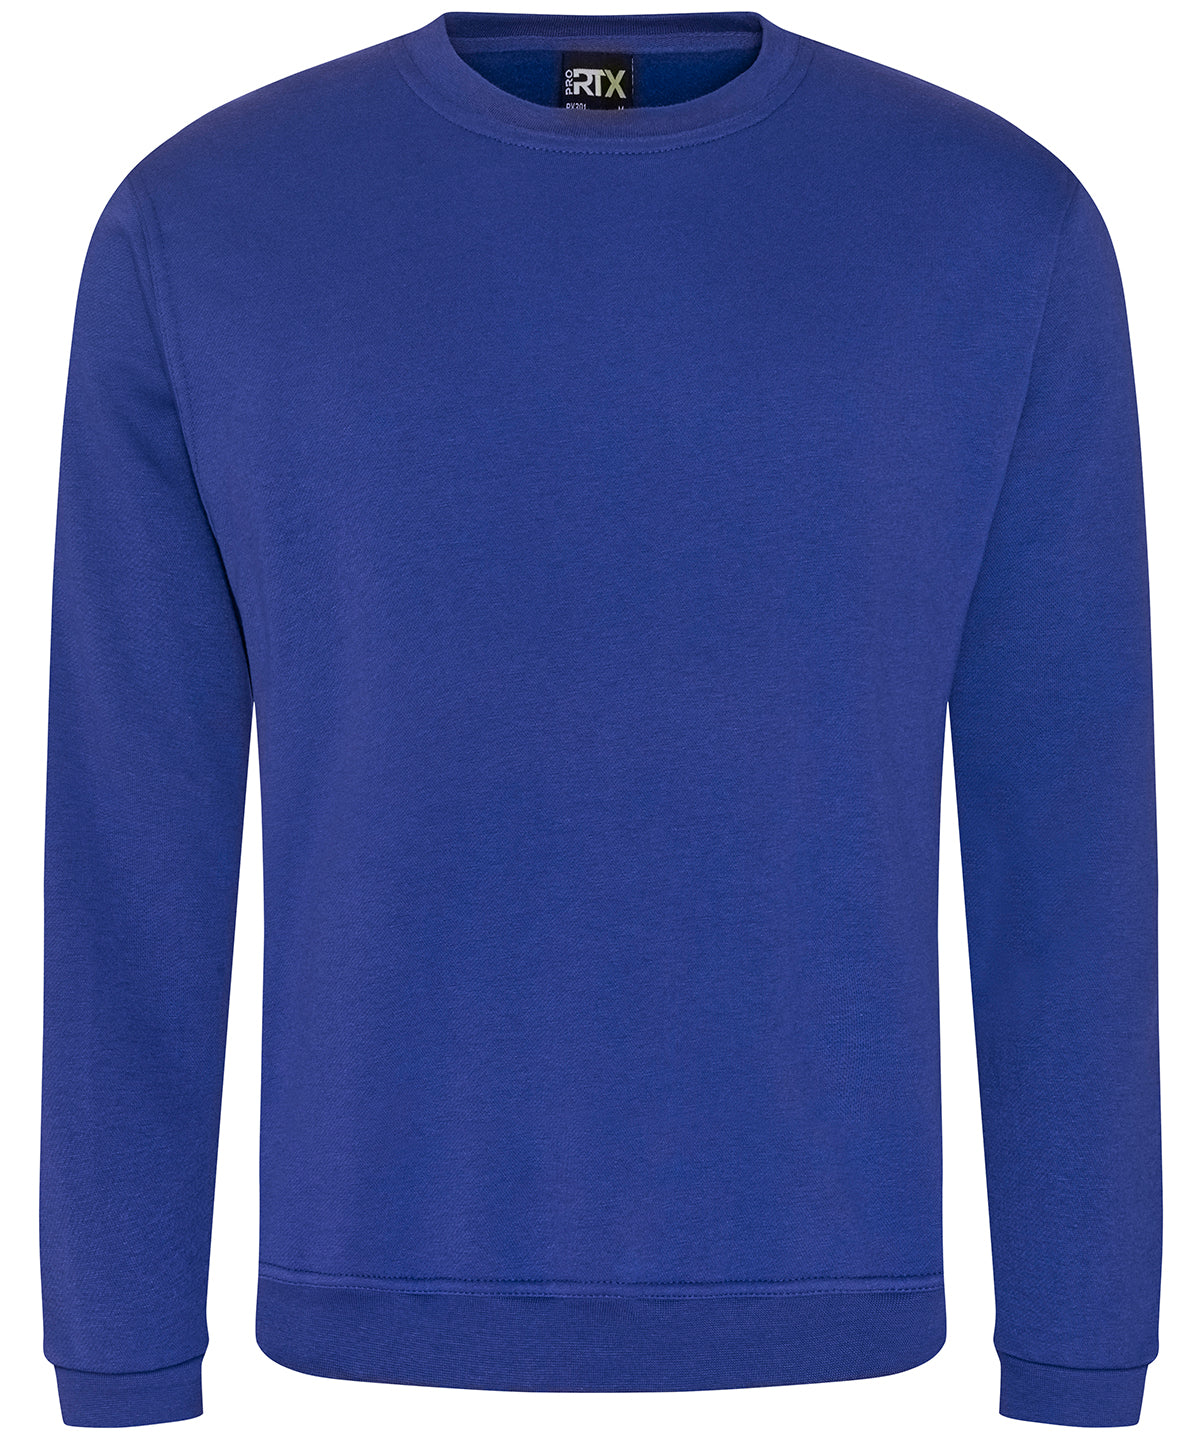 Unisex Royal Blue Medium Sweatshirt - choose logo